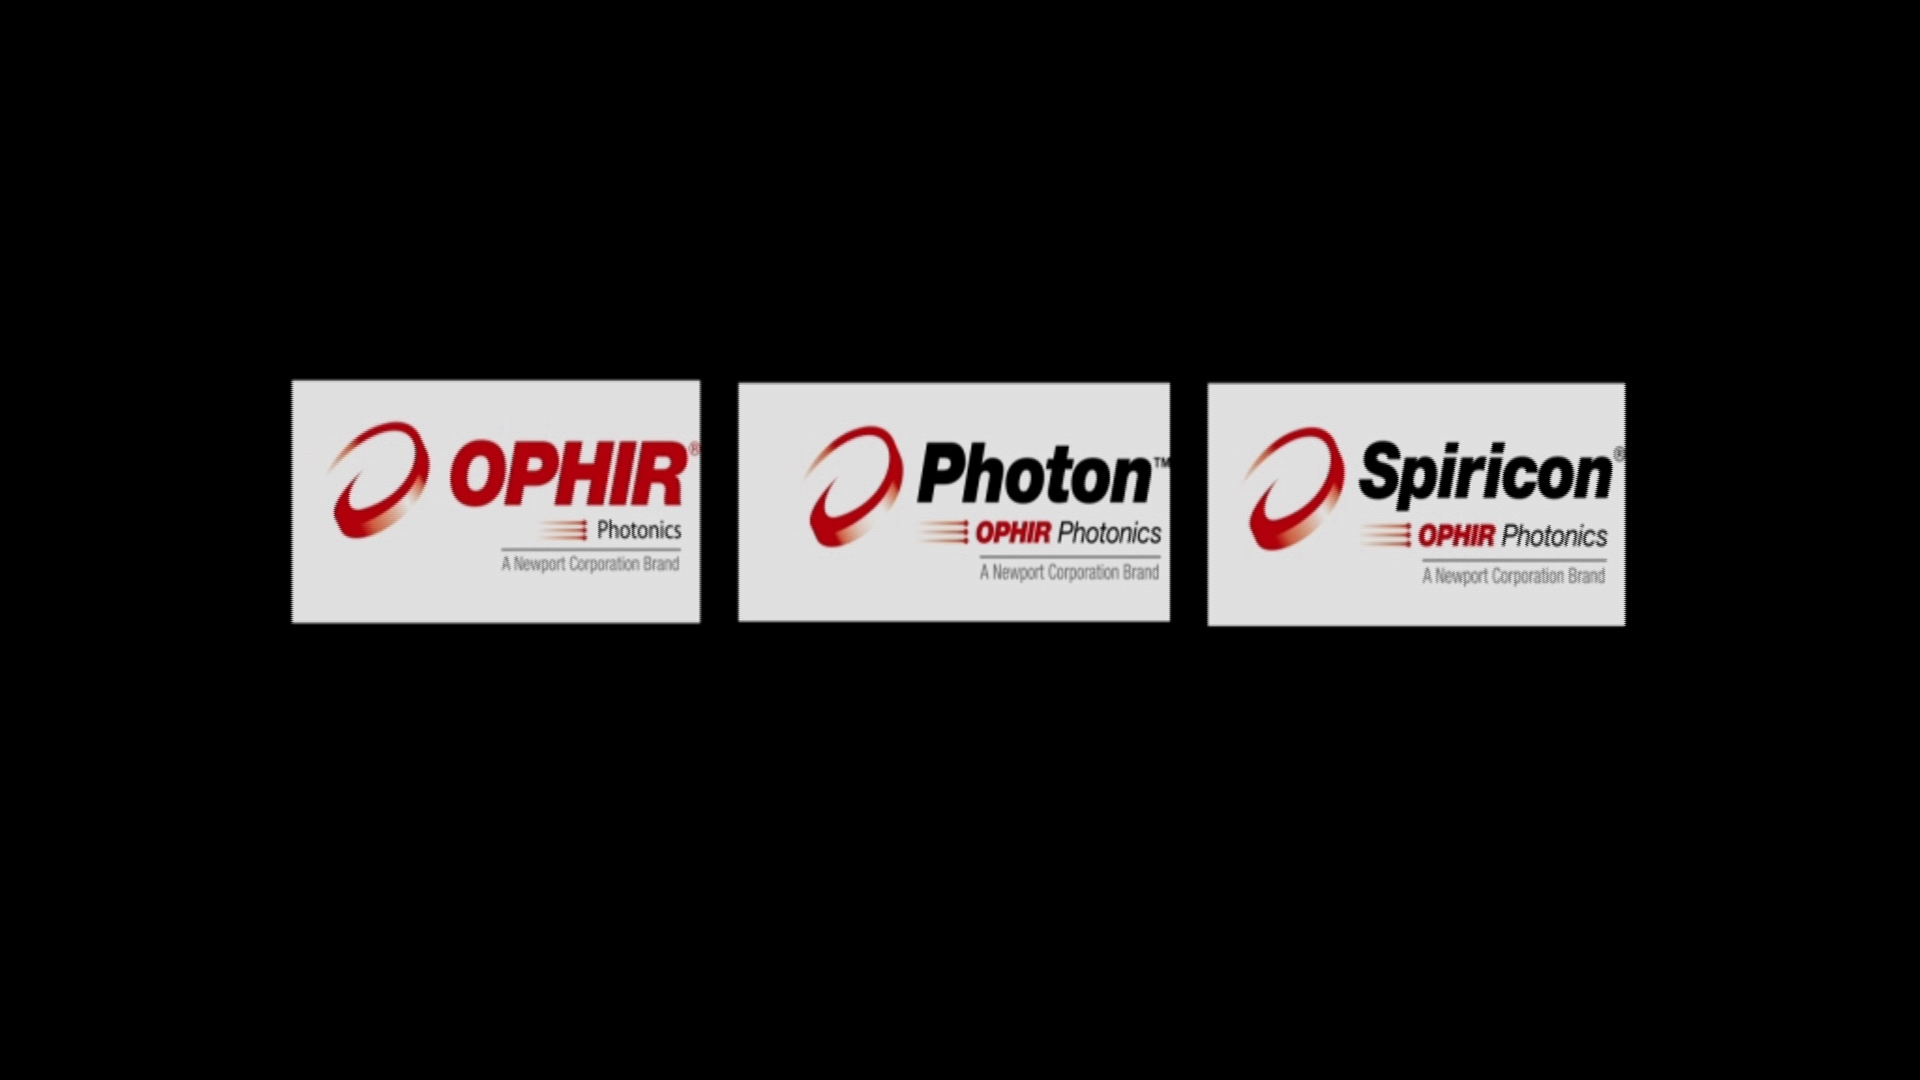 Ophir Photonics